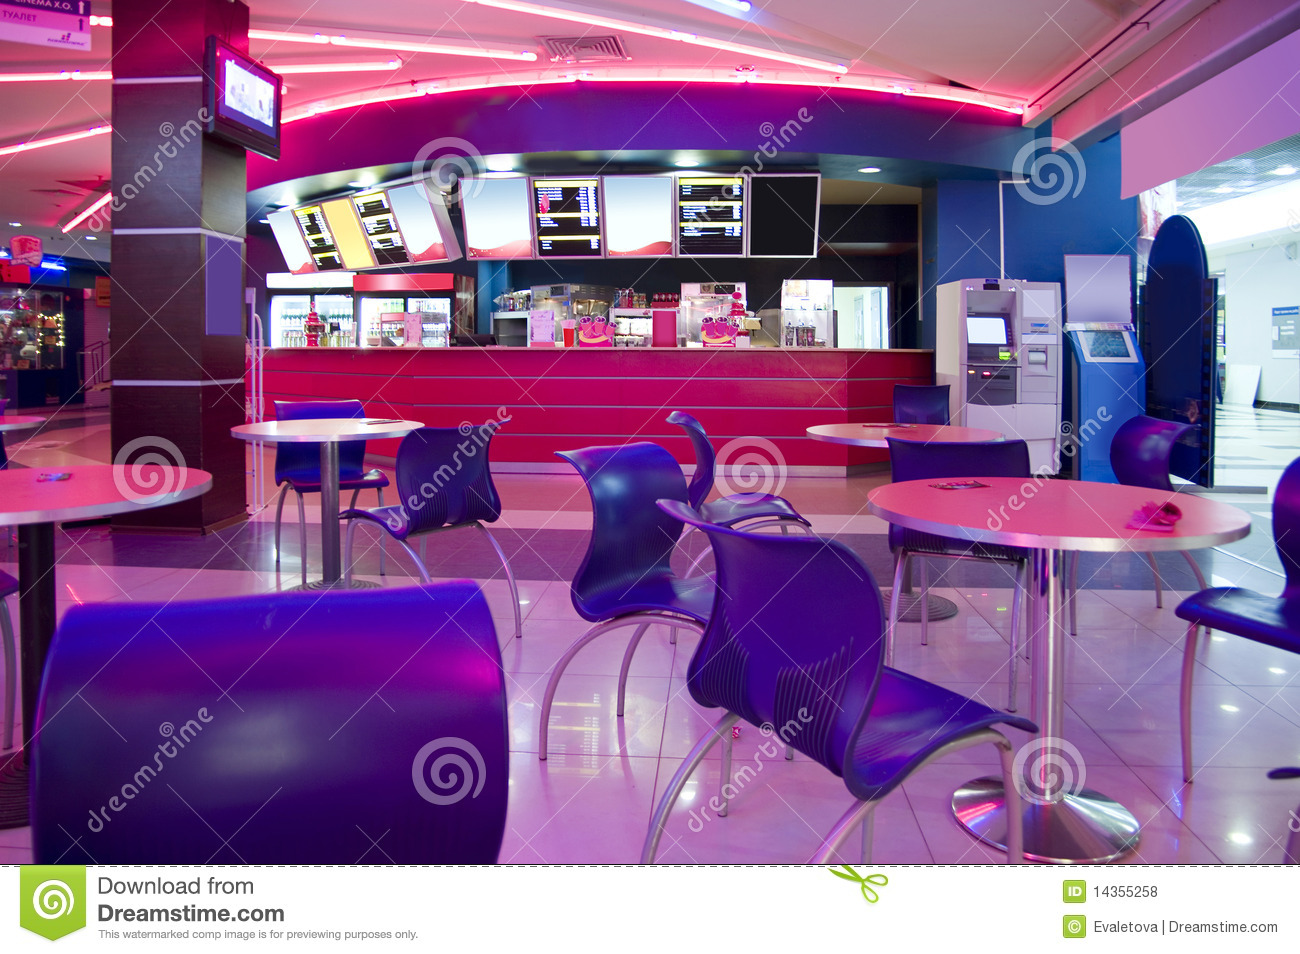 modern cafe interior royalty free stock photos - image: 14355258